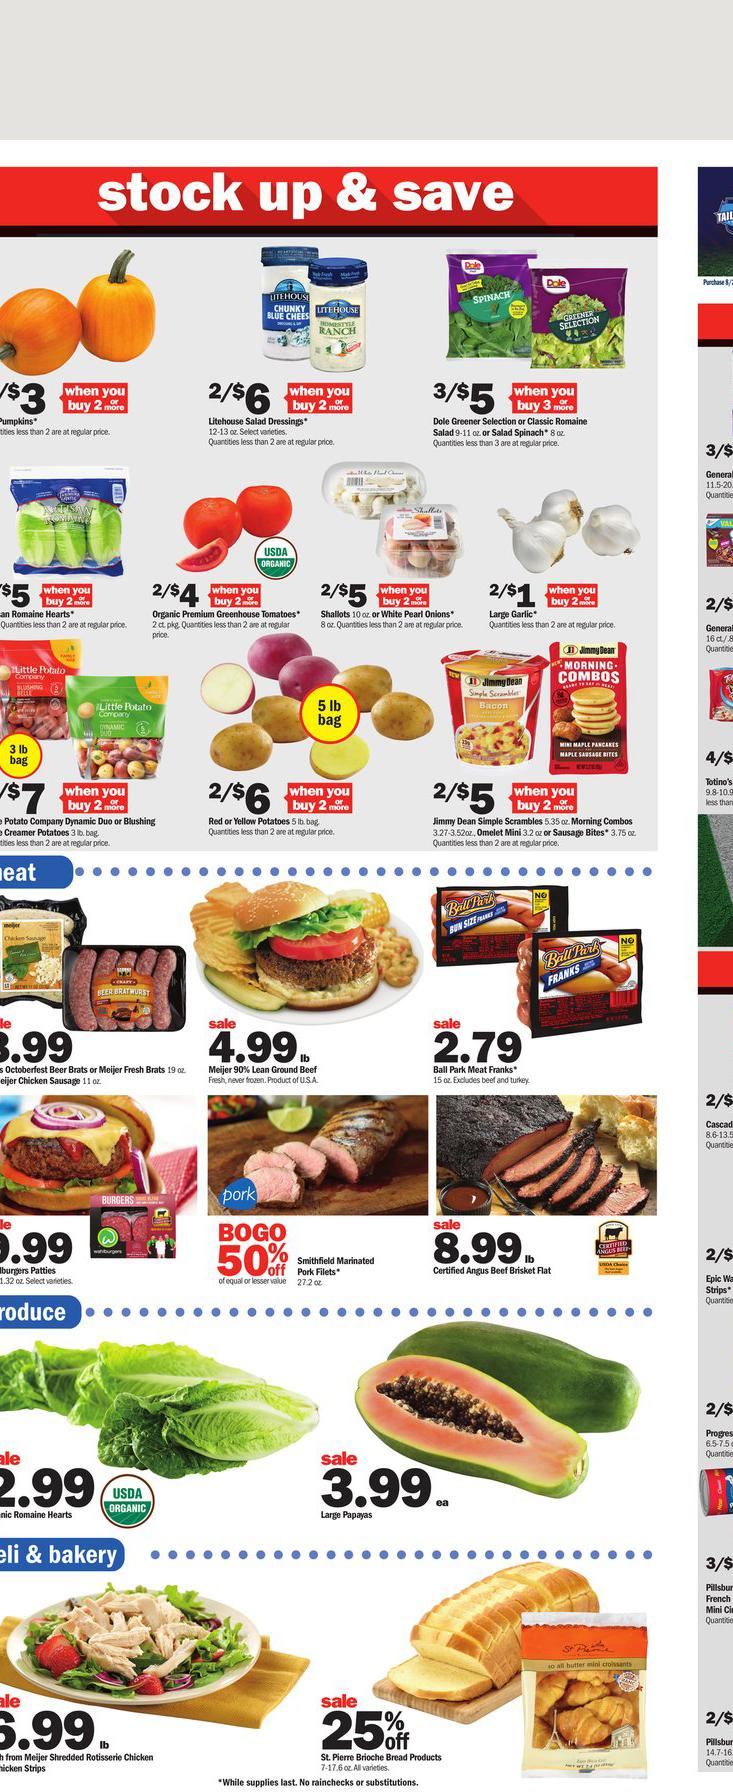 10.10.2021 Meijer ad 5. page